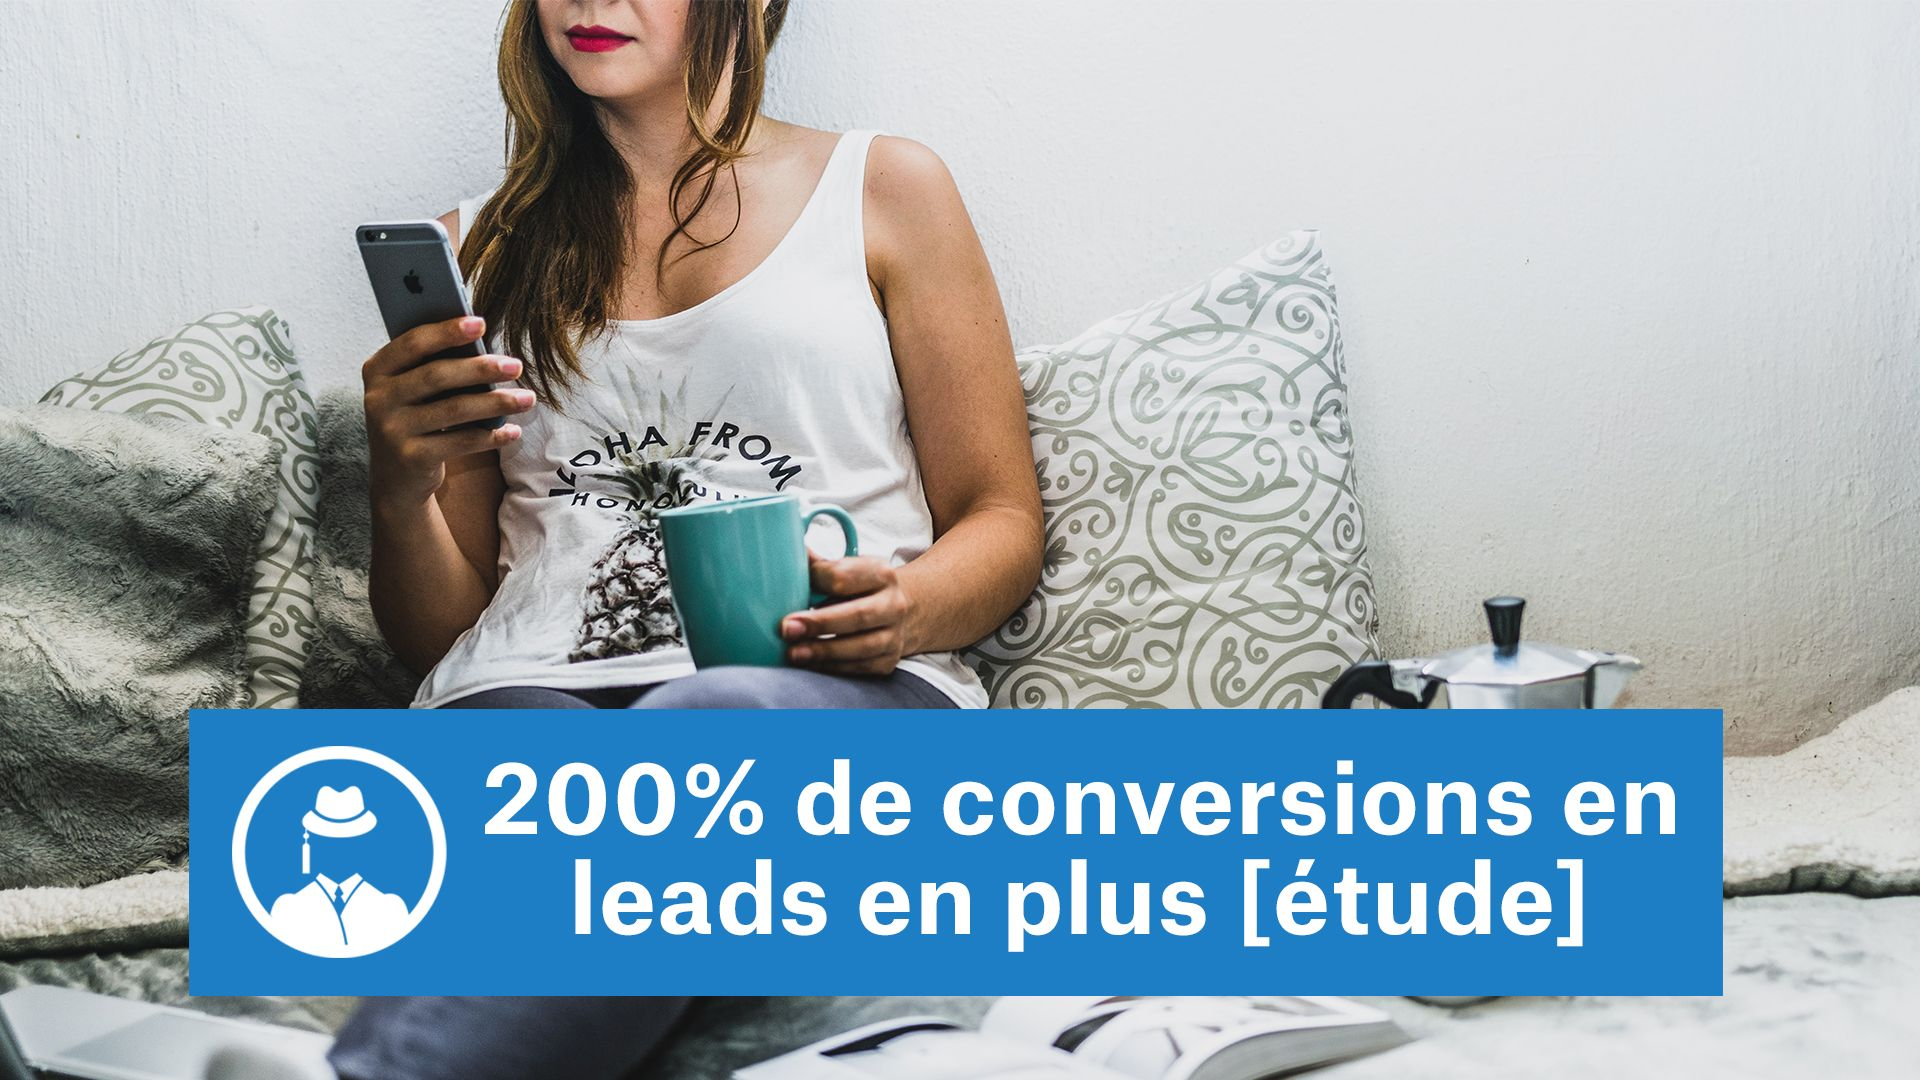 200% de conversions en leads en plus [étude] #GrowthHacking #WebMarketing #FormationGrowthHacking #CentreDeFormationFrance #TunnelAARRR #AARRR #SocialMedia #CommunityManagement #SEO #MarketingDigital #SiteWeb